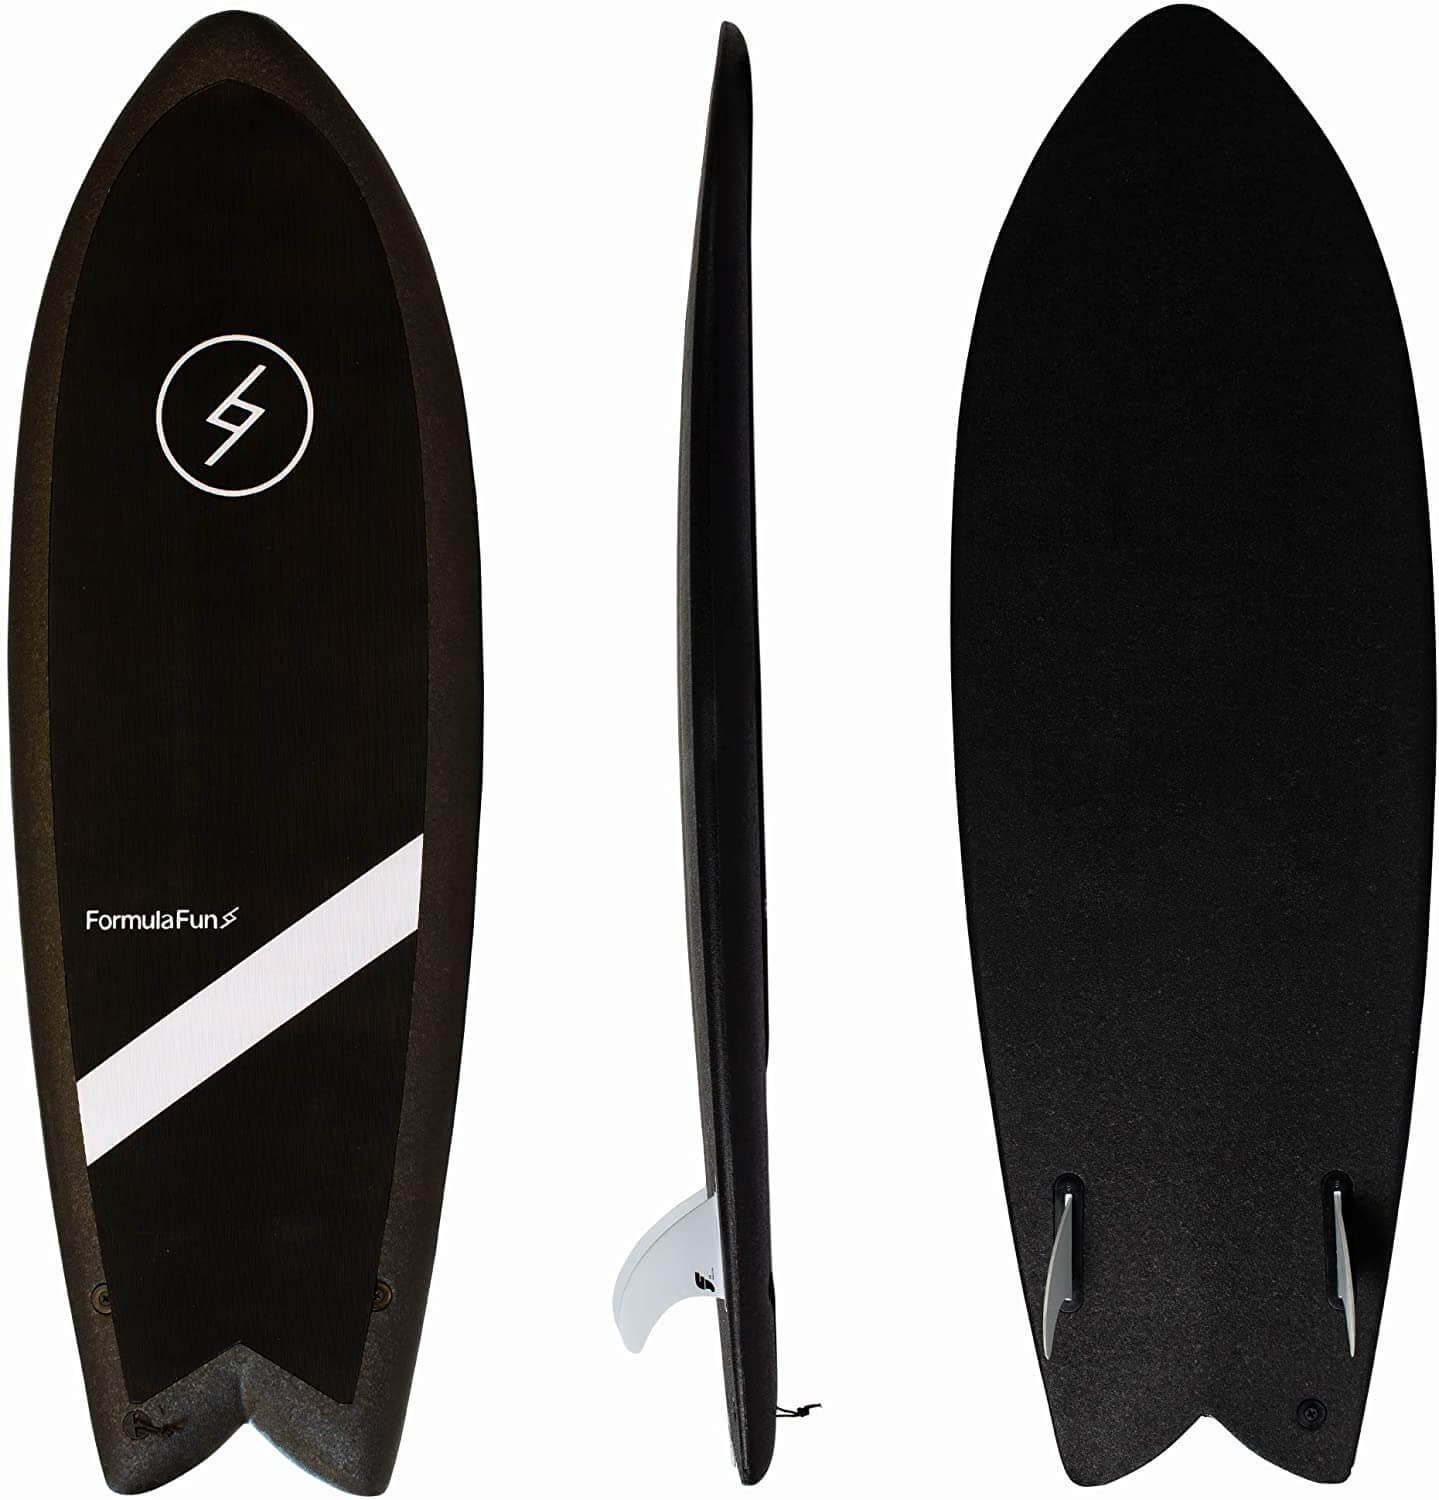 top, side, and bottom view of the formula fun fish surfboard